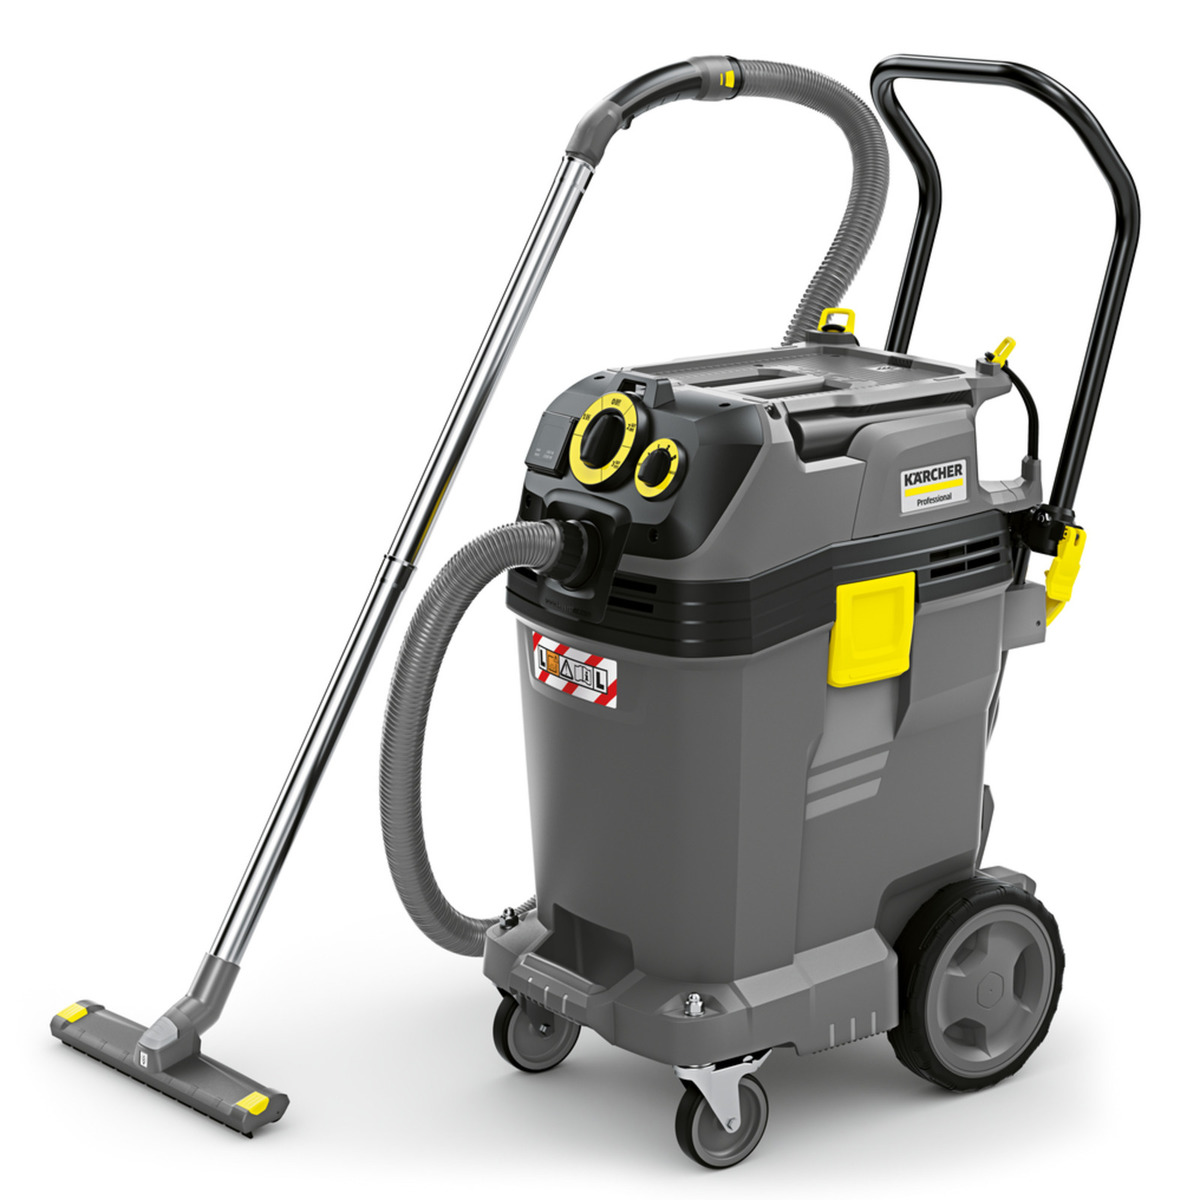 Karcher Tact Filter Clean System Vacuum Cleaner NT50/1